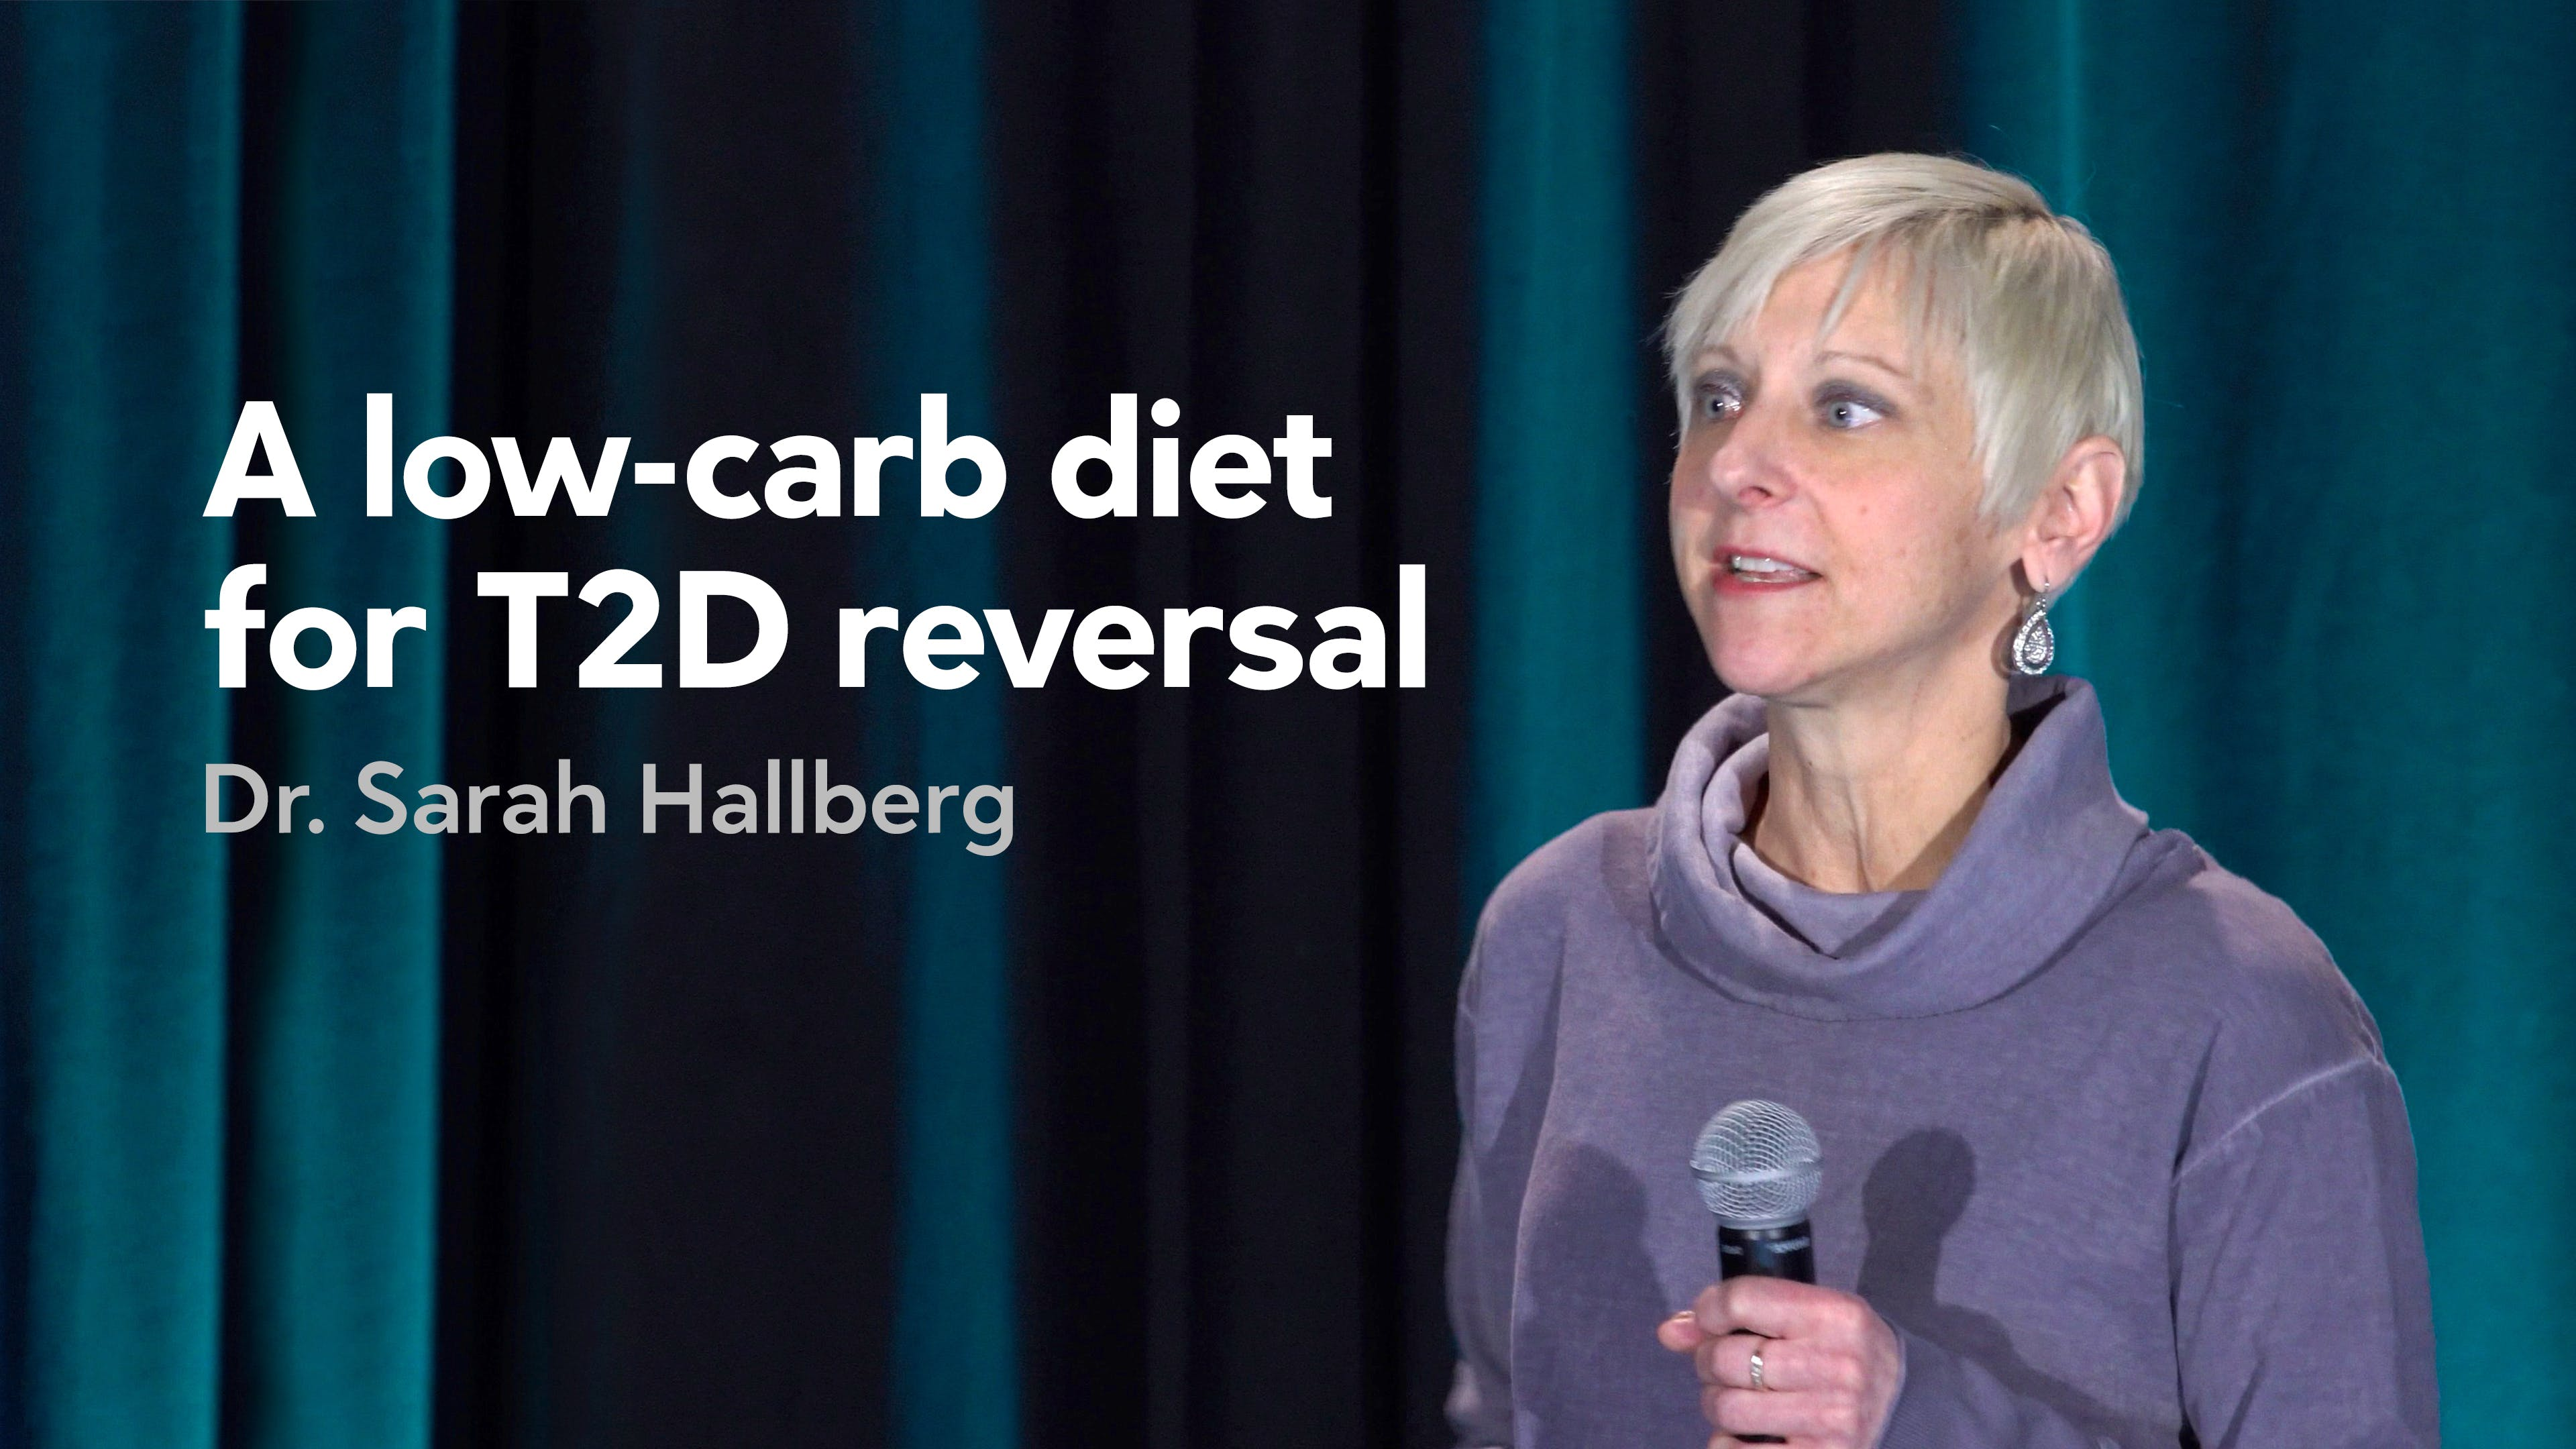 A low-carb diet for T2D reversal – Dr. Sarah Hallberg